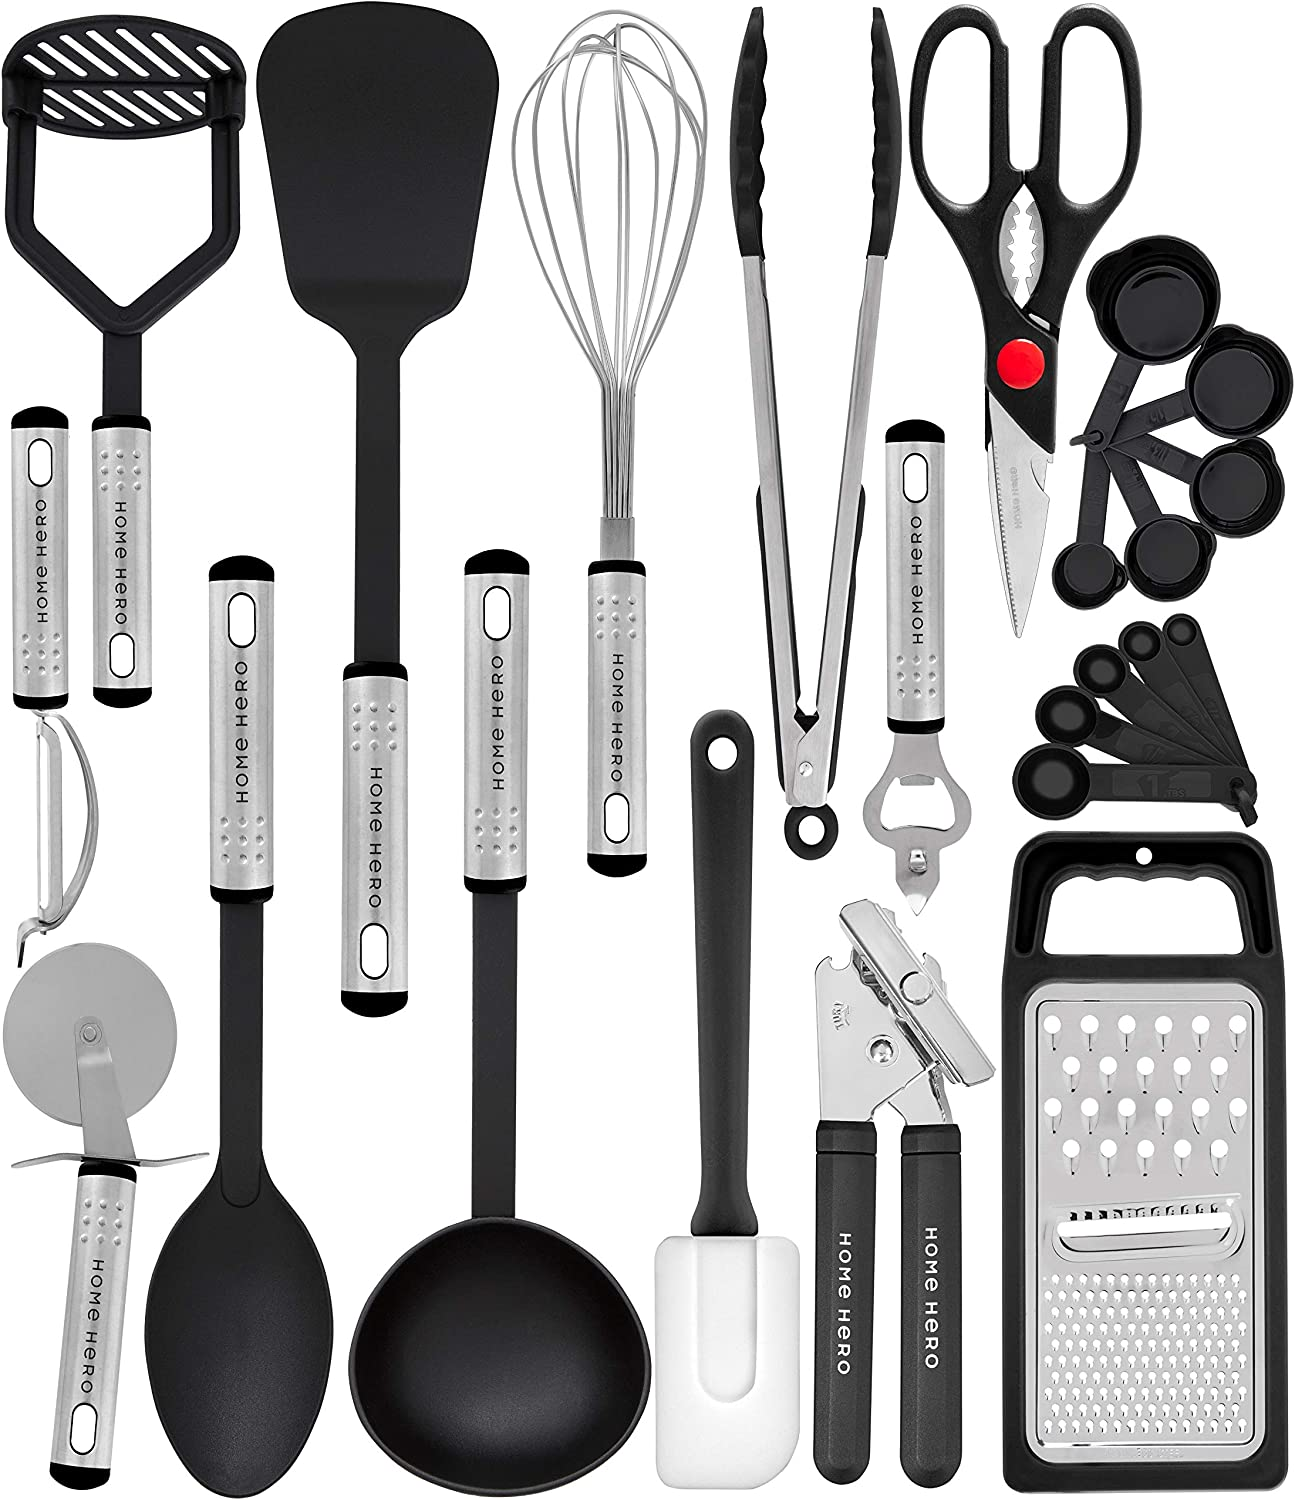 Everything You Need For Cooking Included Measuring Spoons included Heat Resistant up to 450 Degrees Best Christmas Gift Ever Chef essential 23-Pc Stainless Steel Kitchen Utensil Set Easy to Clean